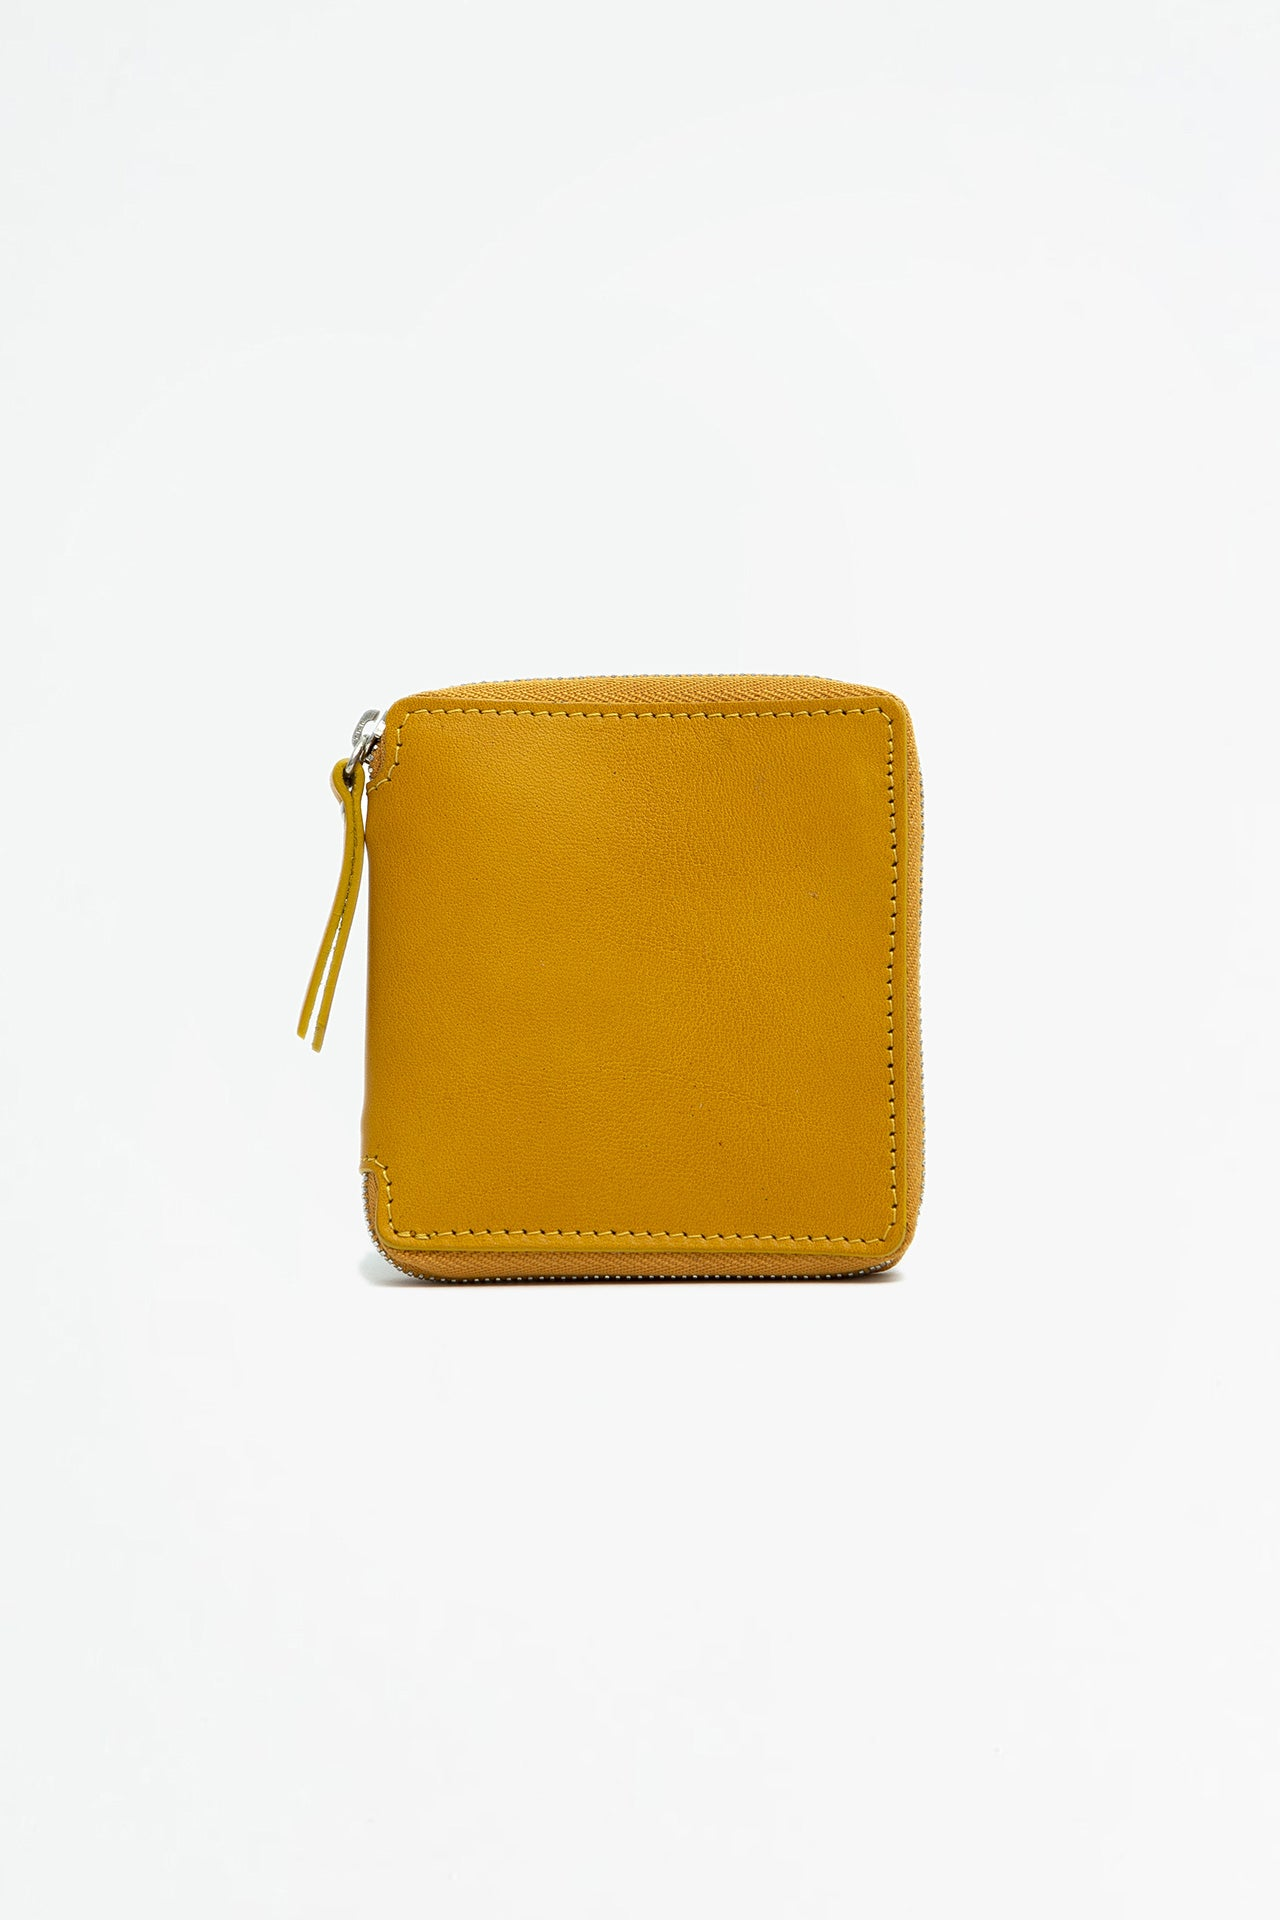 Big zipped wallet mustard